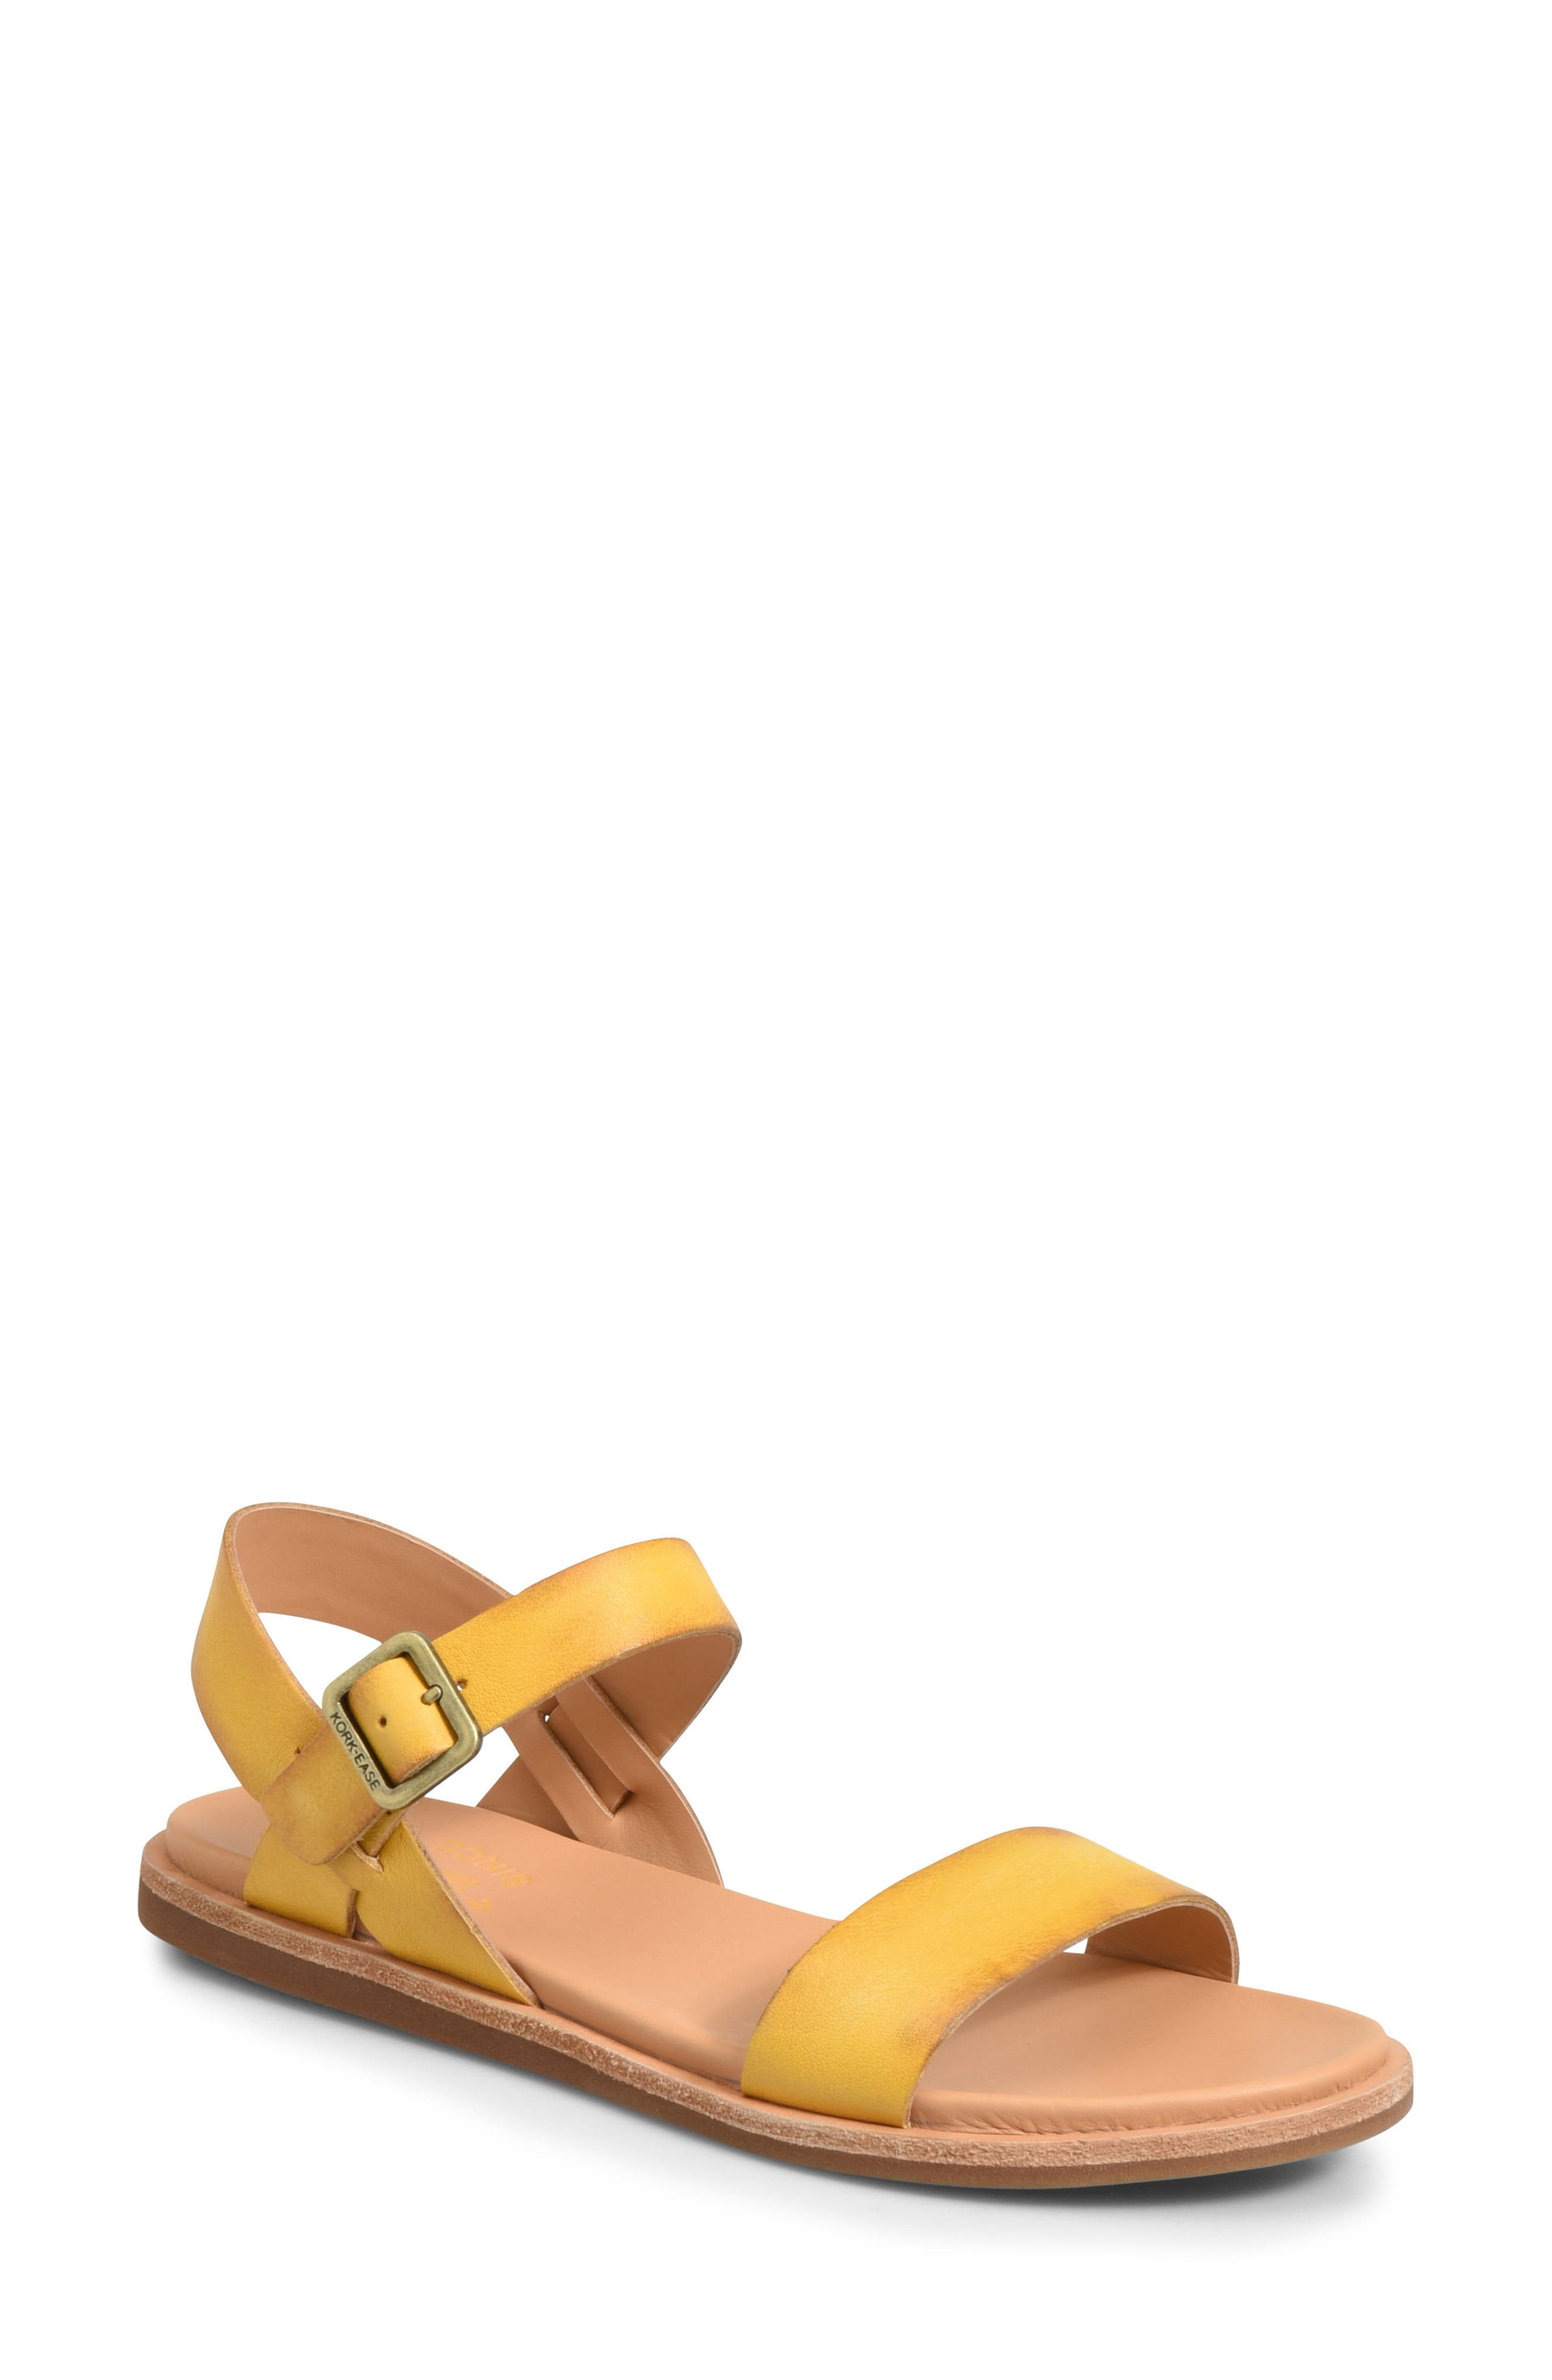 Yucca Sandal,                         Main,                         color, Yellow Leather